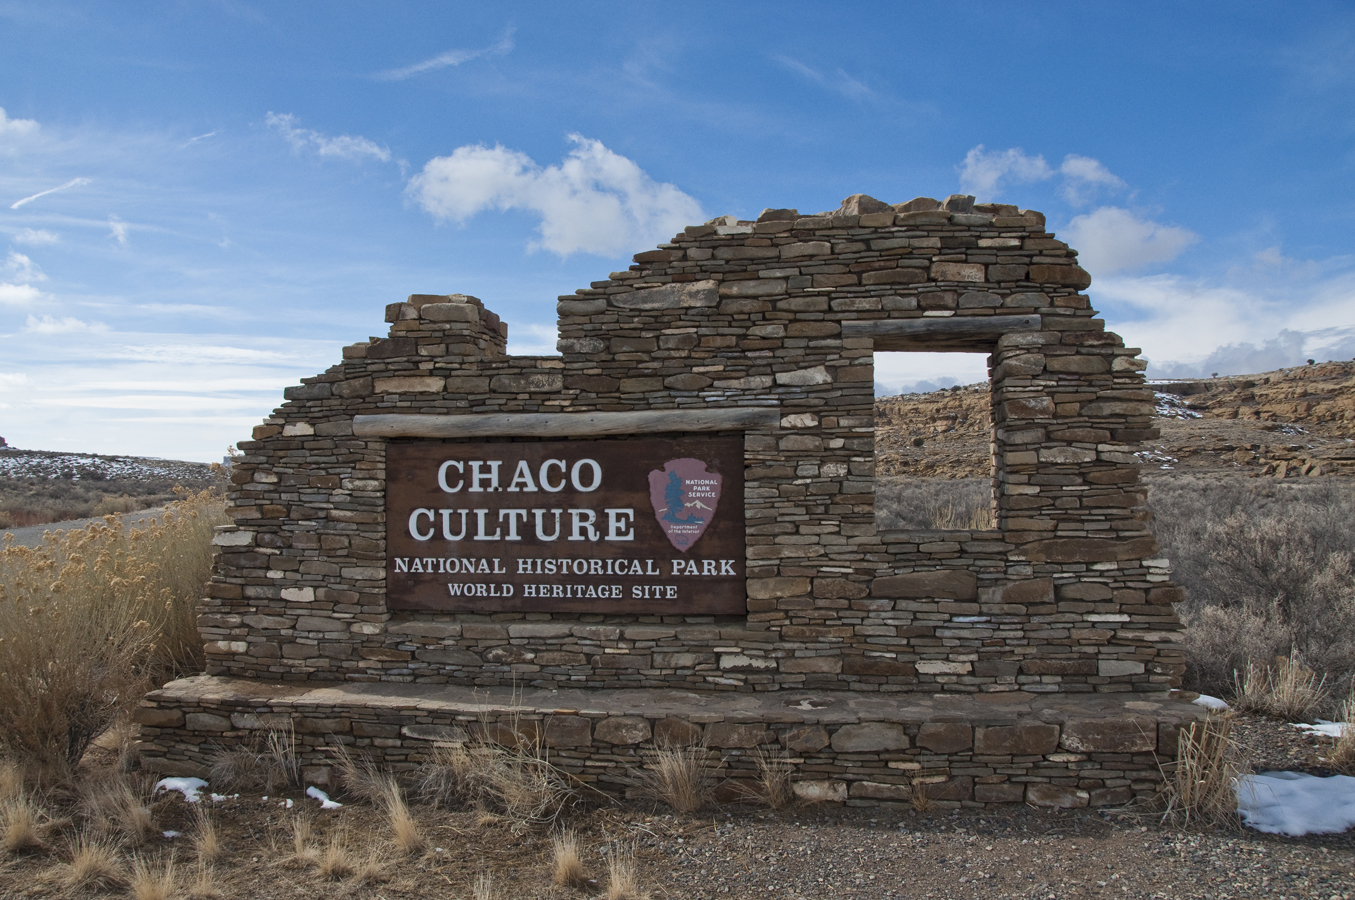 Entrance to Chaco Canyon NHP